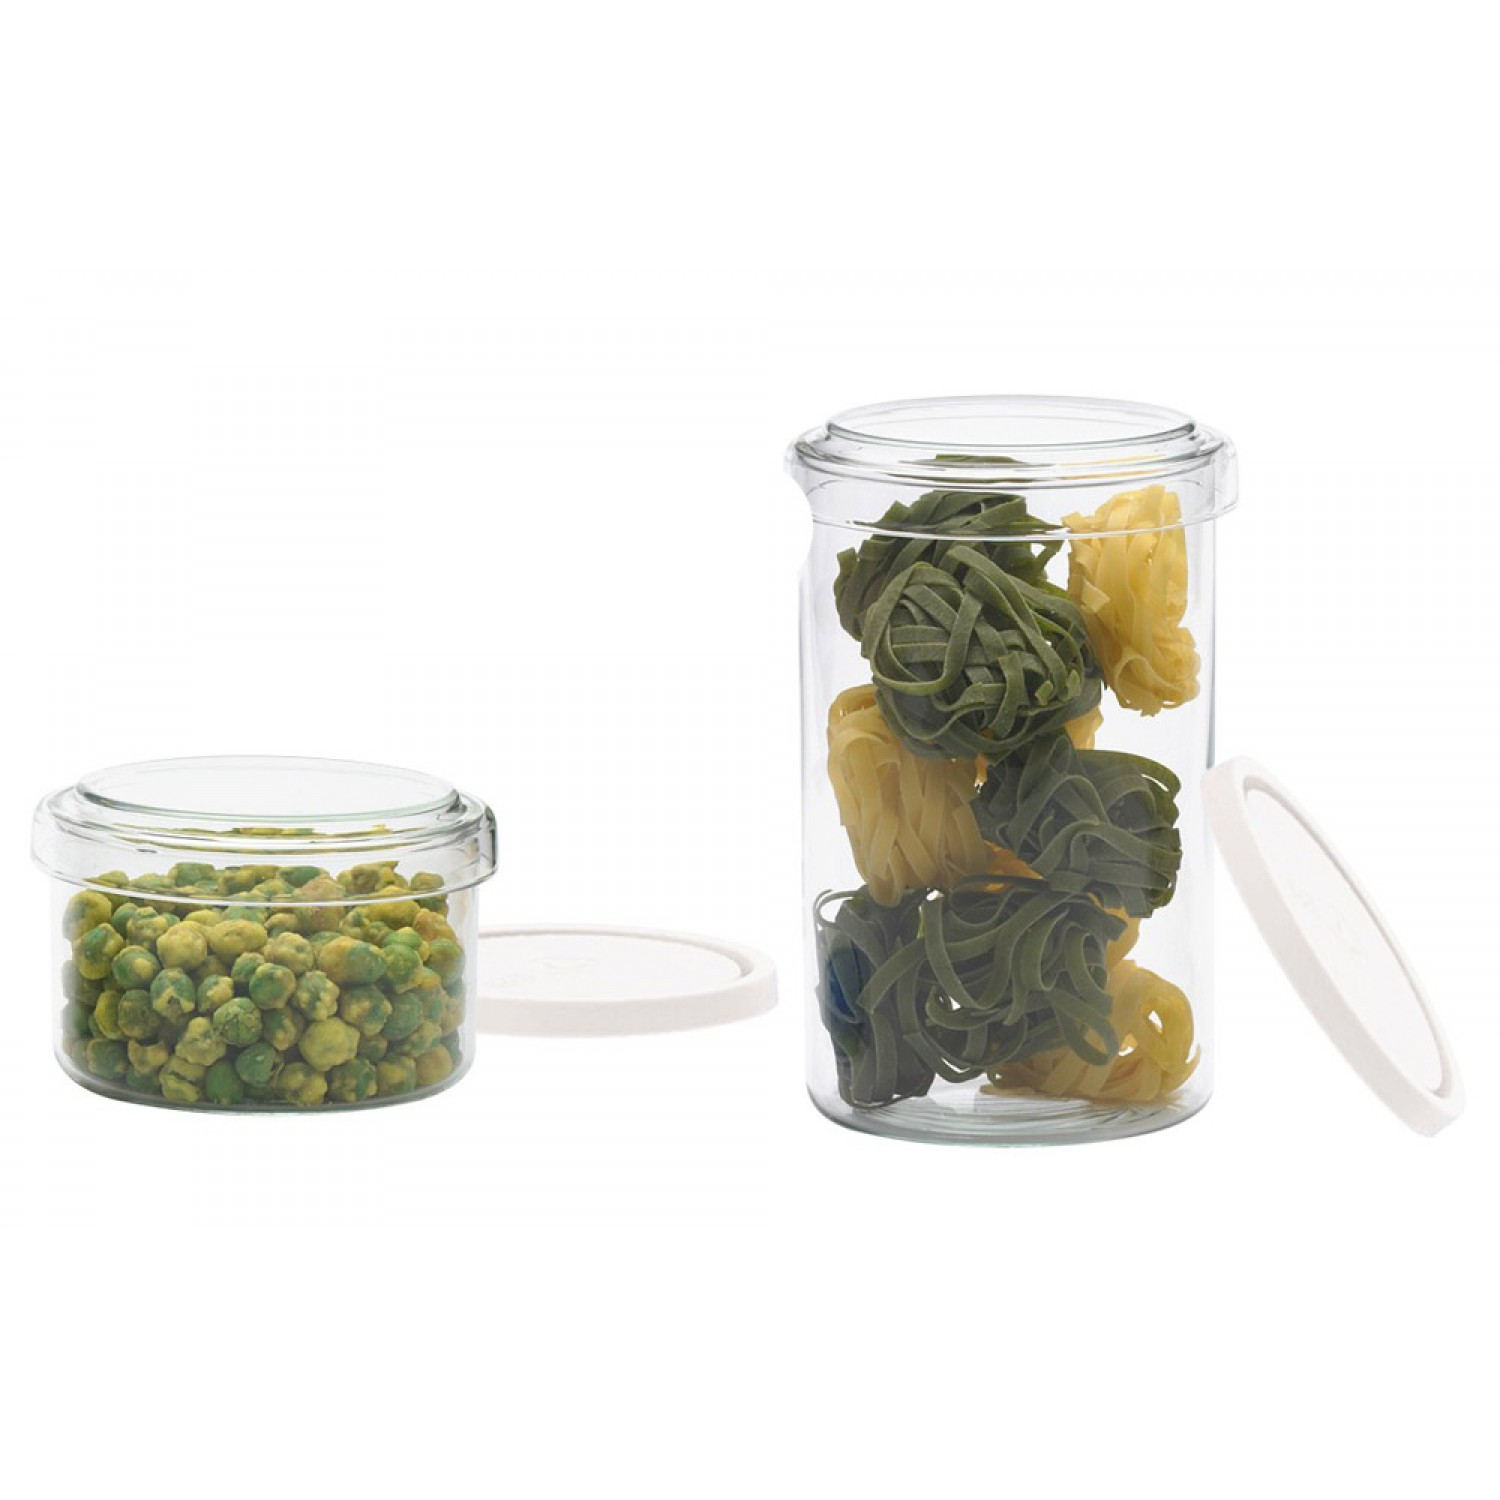 Vorratsdosen Glas Glass Jar With Glass Plastic Lid Different Sizes